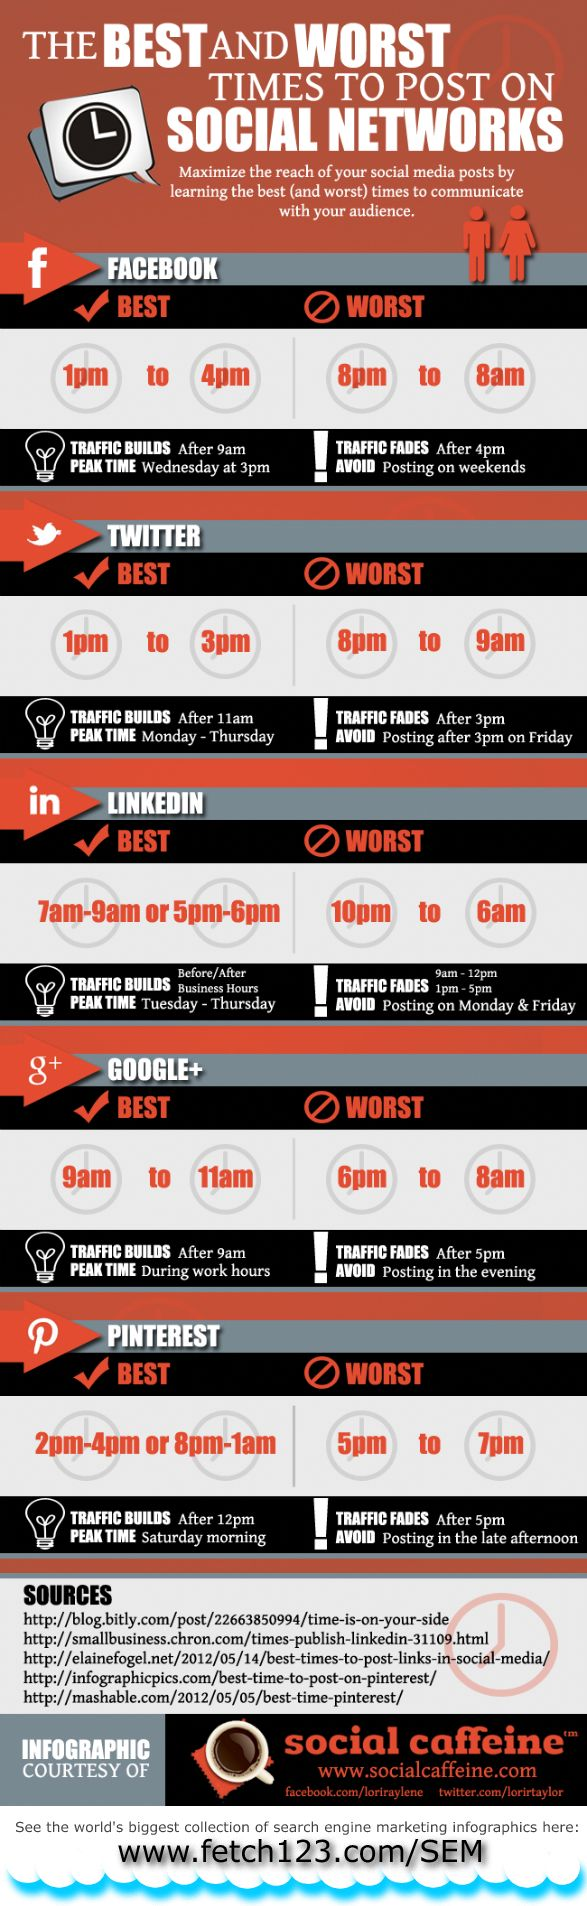 The Best (And Worst) Times To Post To Social Media. [INFOGRAPHIC] - from Social Caffeine (times shown are EST)